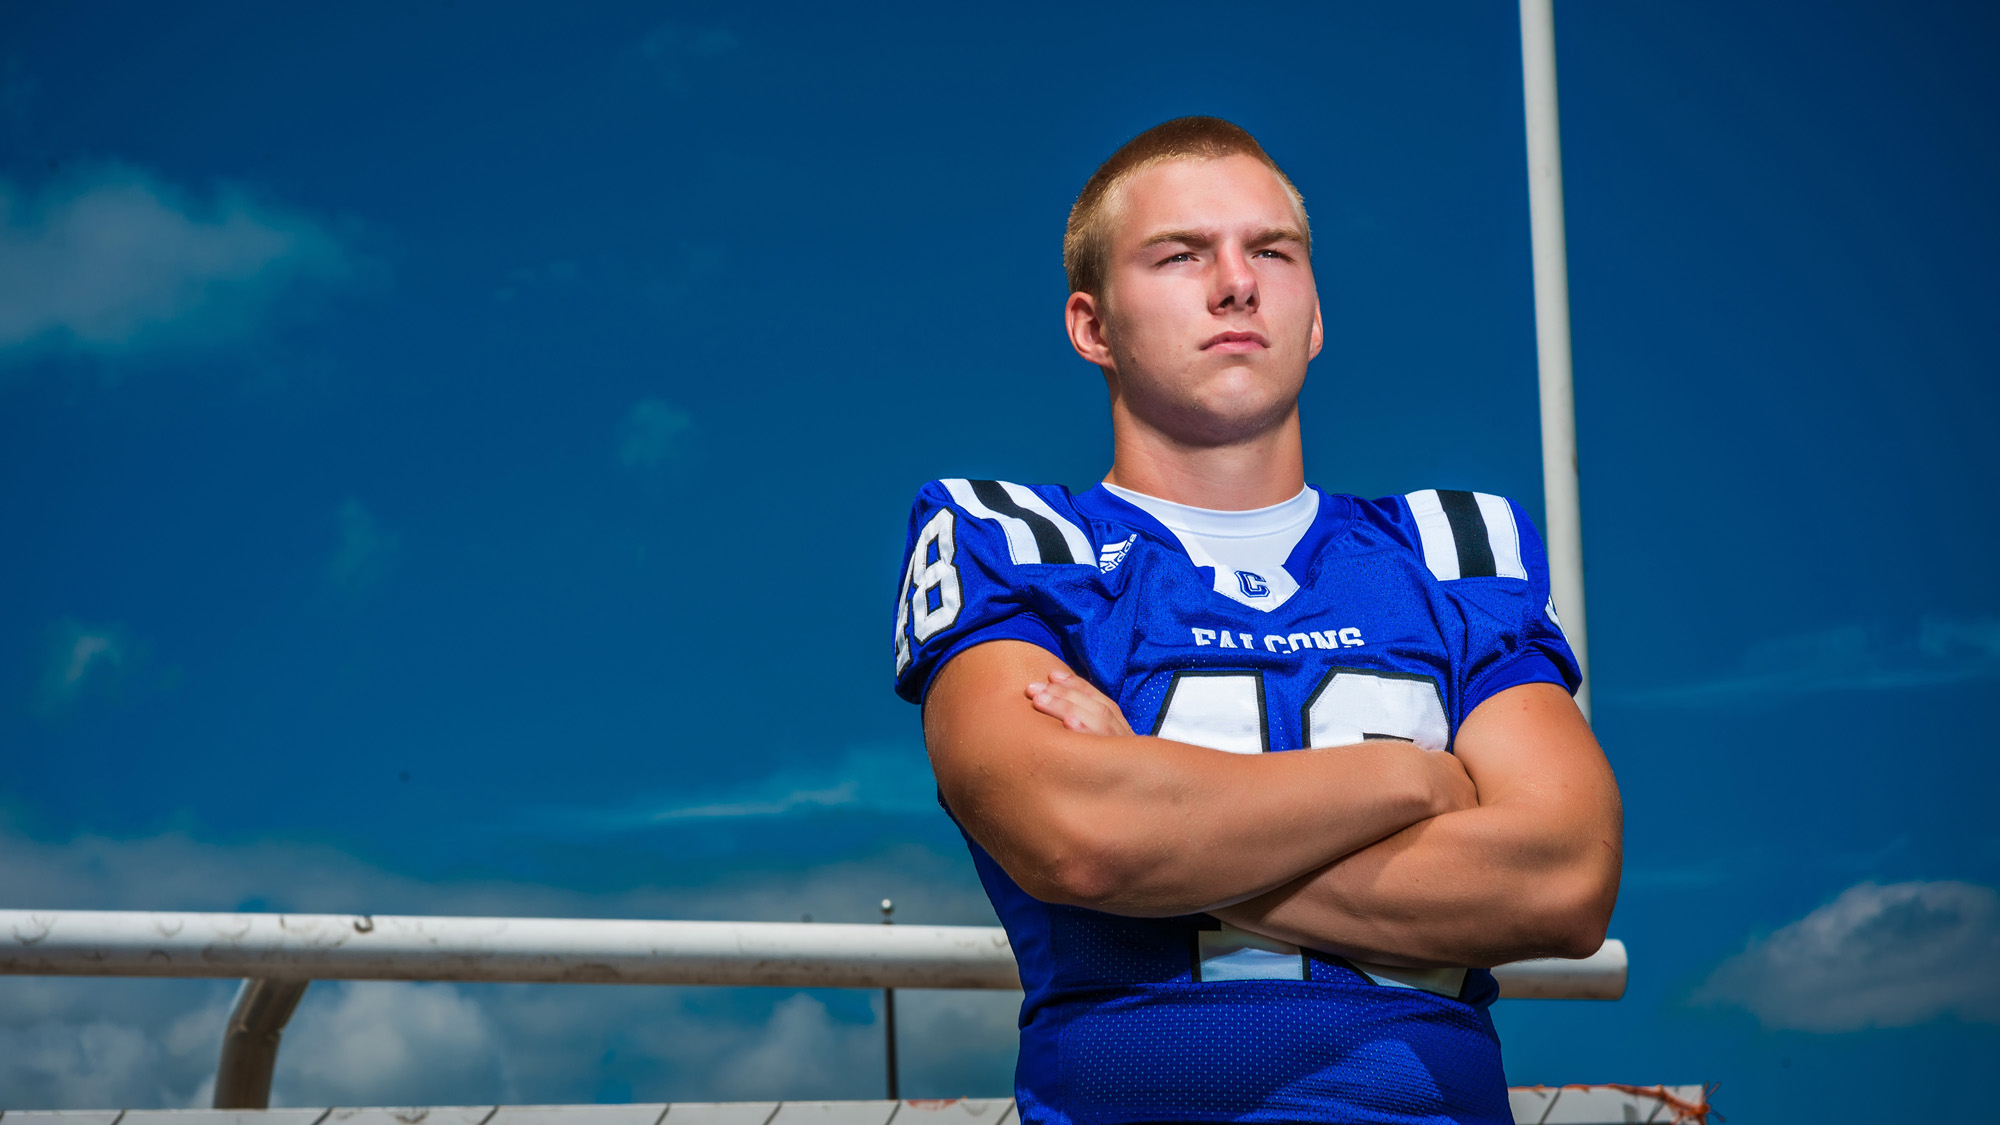 Football Senior Pictures by Tony Urban Photography, Somerset PA